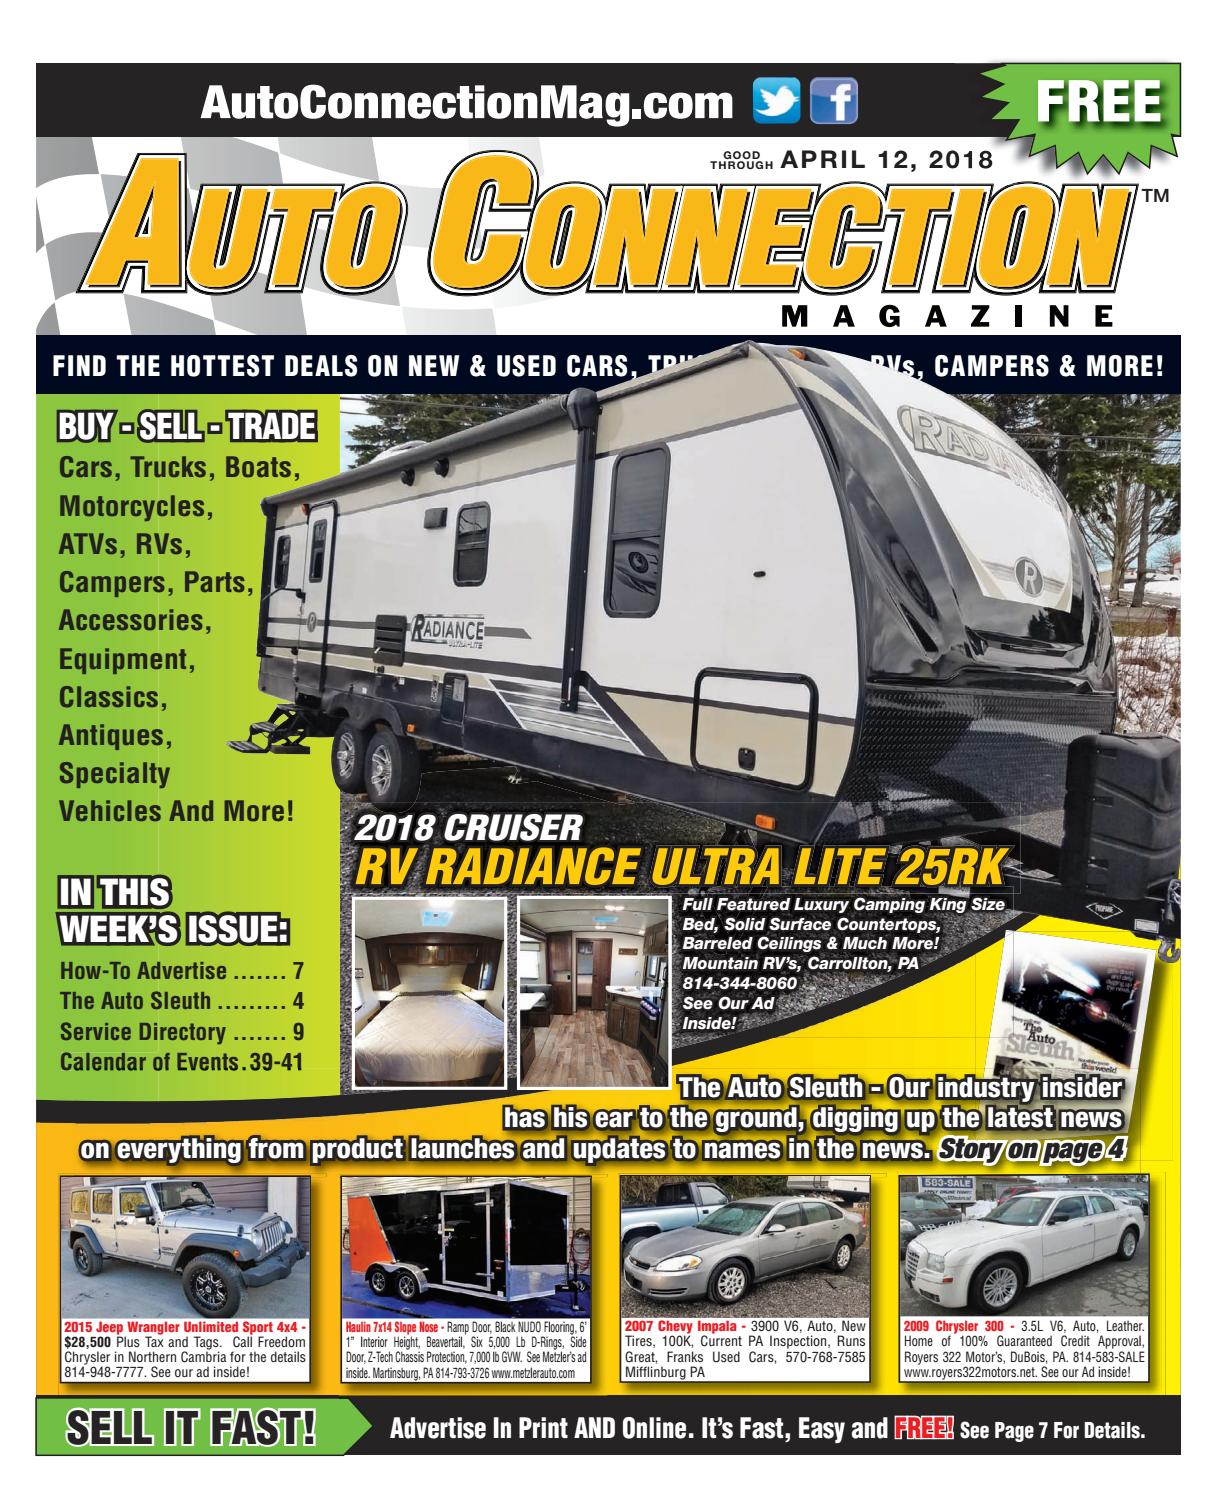 04-12-18 Auto Connection Magazine by Auto Connection Magazine - issuu